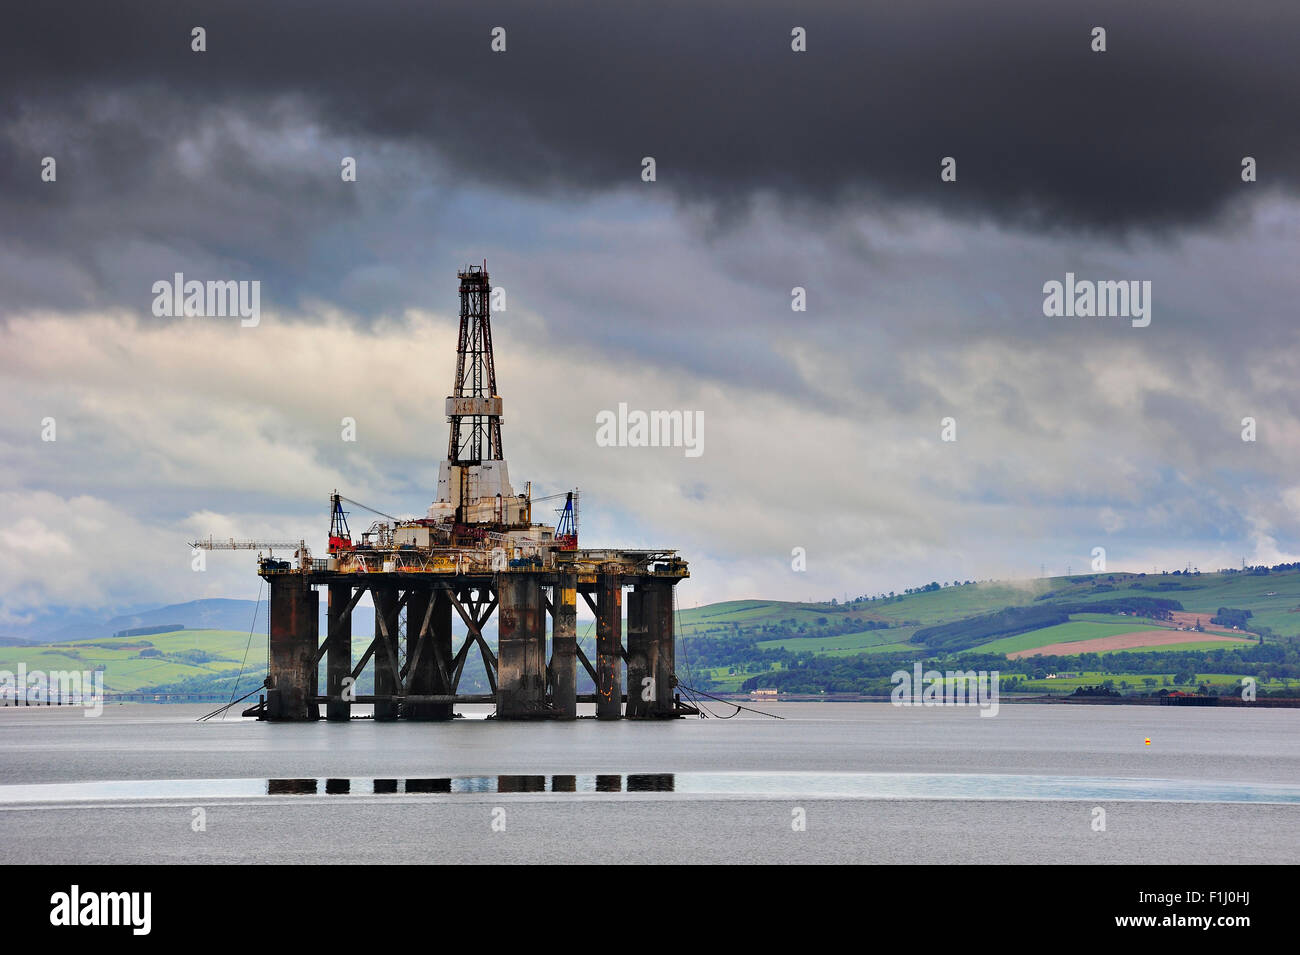 Oil rig / oil drilling platform waiting to be repaired in Cromarty Firth near Invergordon, Ross and Cromarty, Scotland, UK Stock Photo